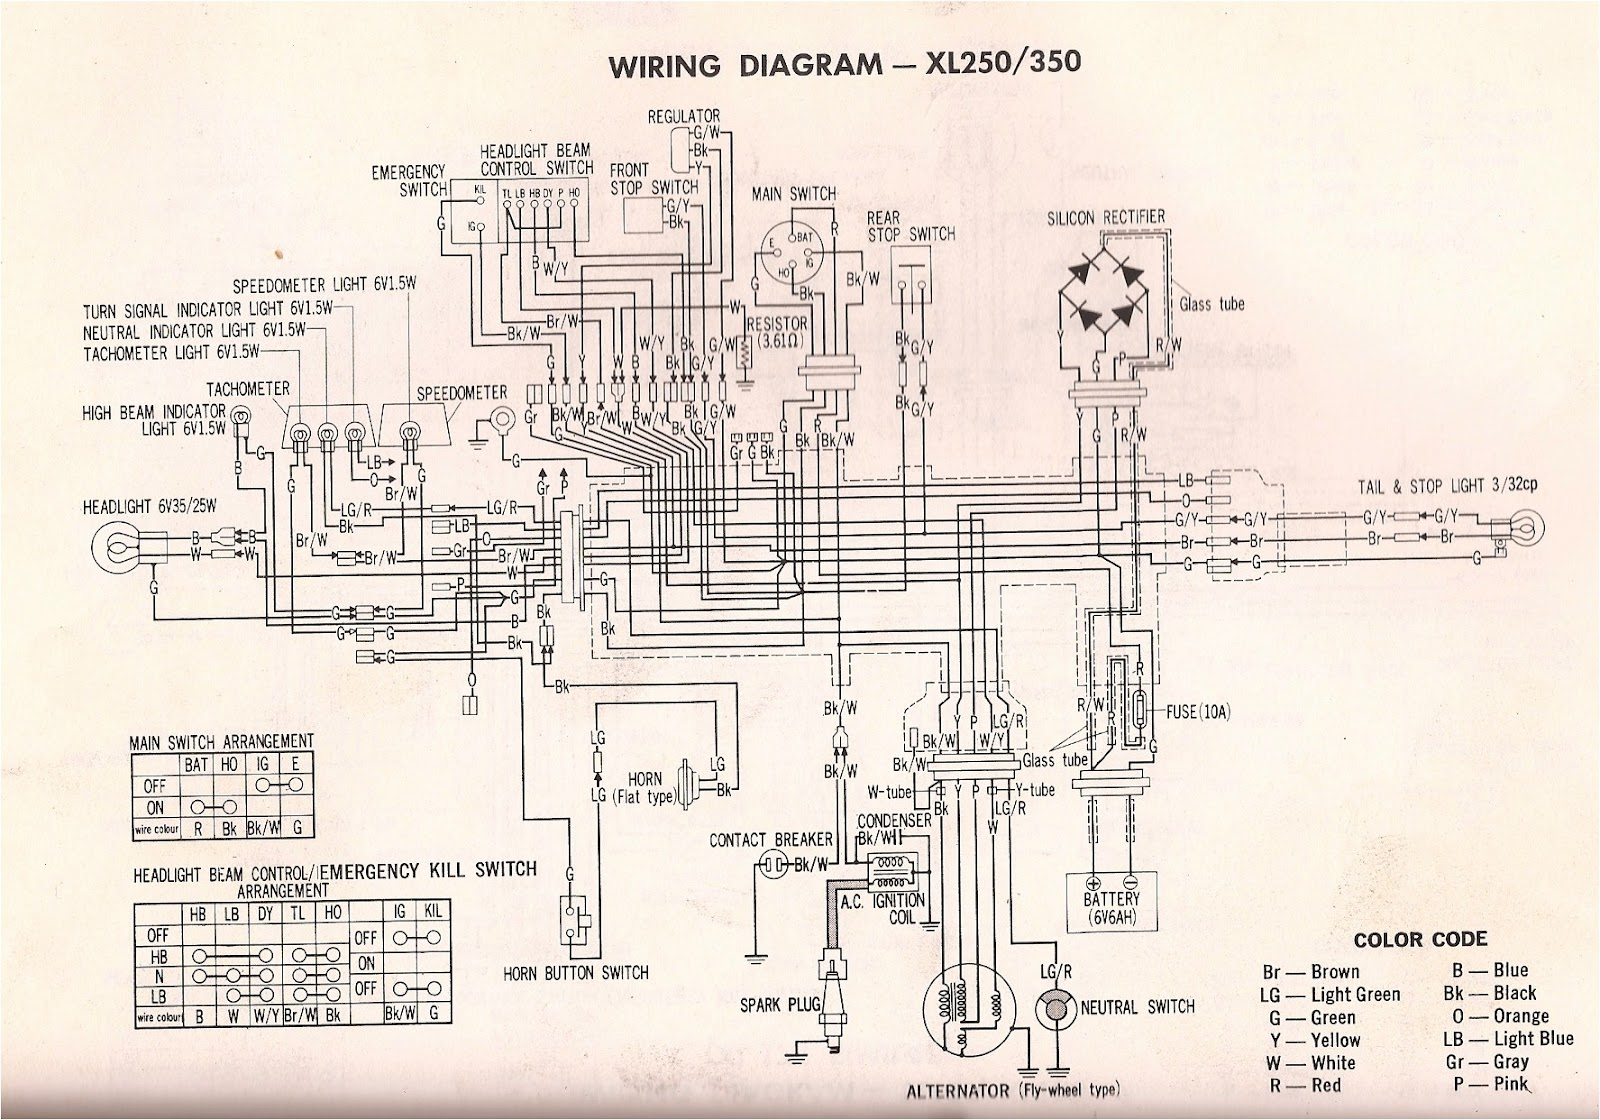 Honda Xl 125 Wiring Diagram Archive Of Automotive Car 350 Schematics Rh Thyl Co Uk 1977 1974